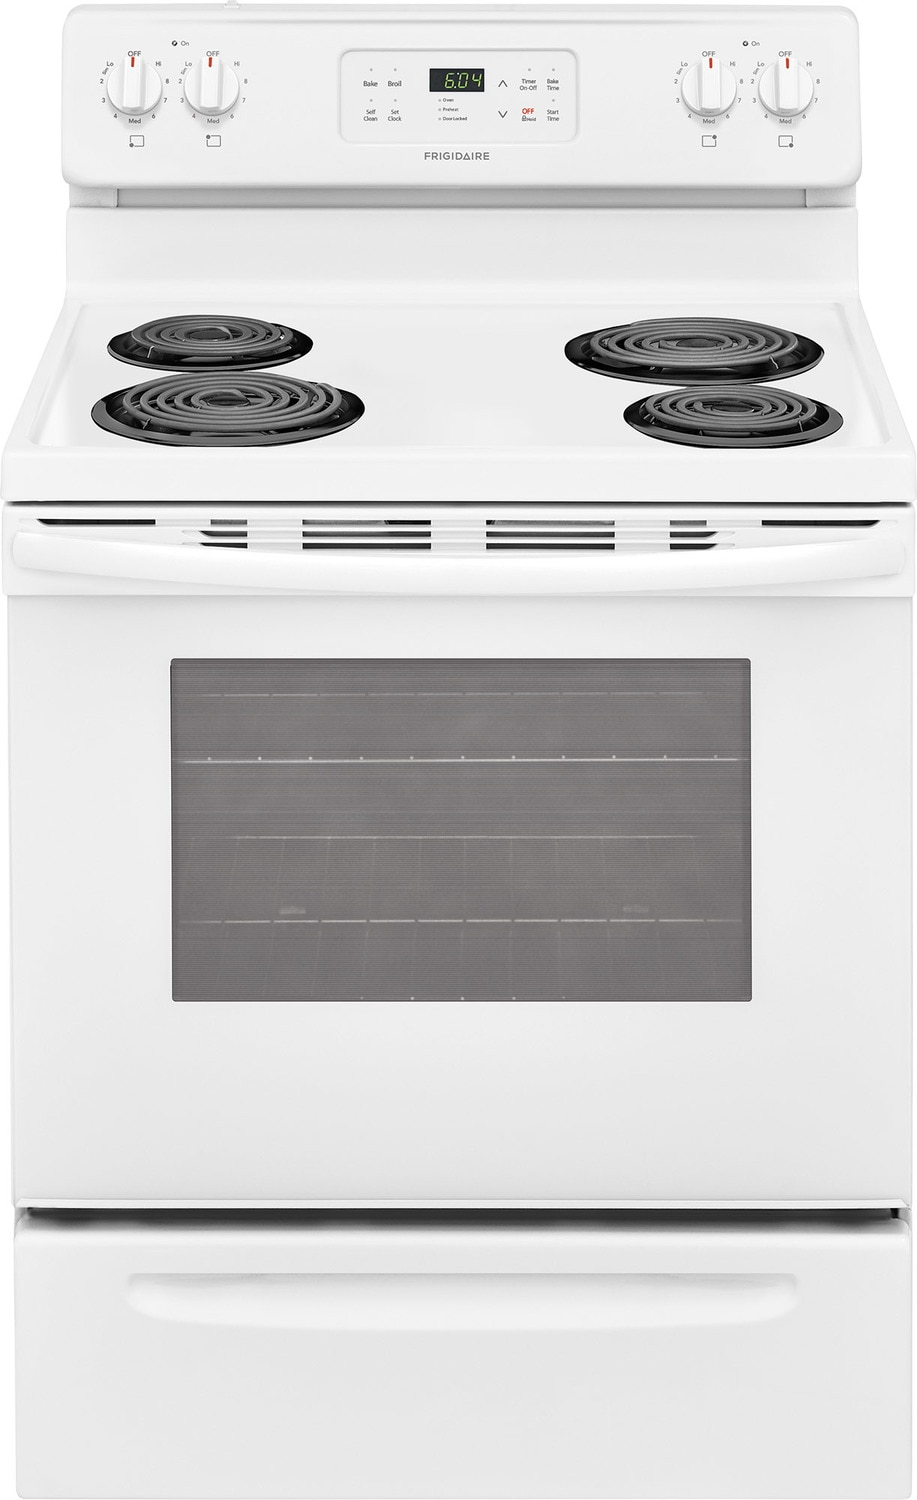 Frigidaire White Freestanding Electric Range (5.3 Cu. Ft.) - CFEF3016TW